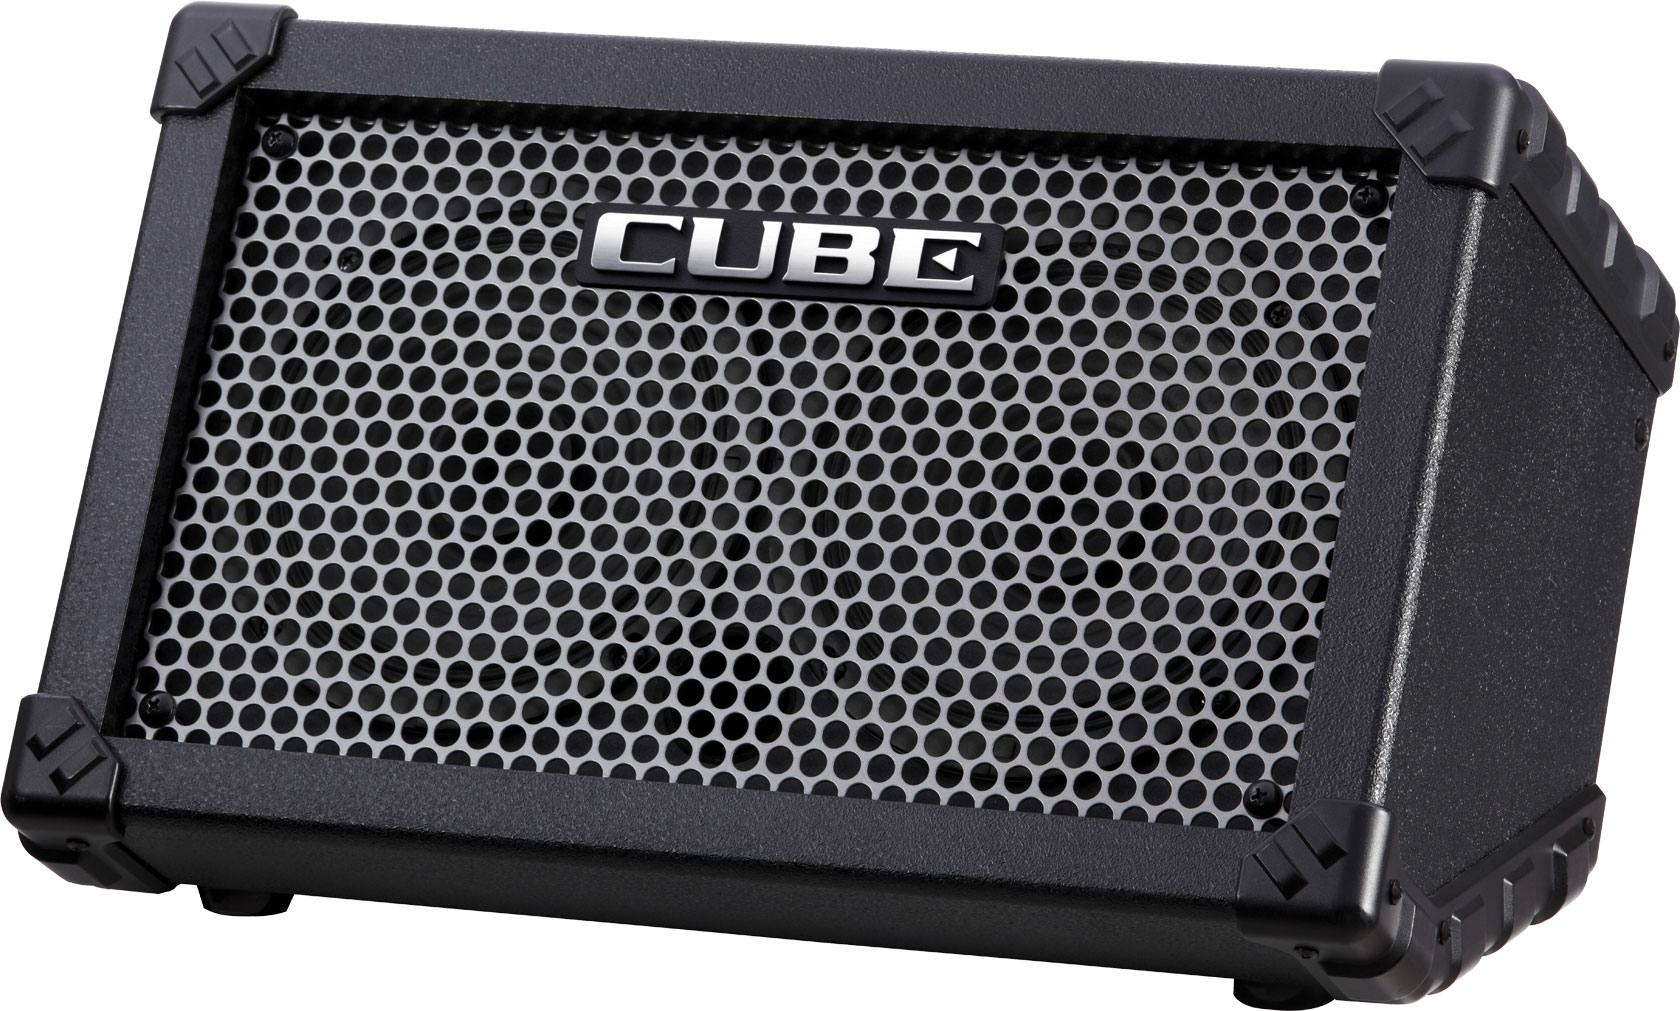 roland cube street battery powered portable amplifier. Black Bedroom Furniture Sets. Home Design Ideas